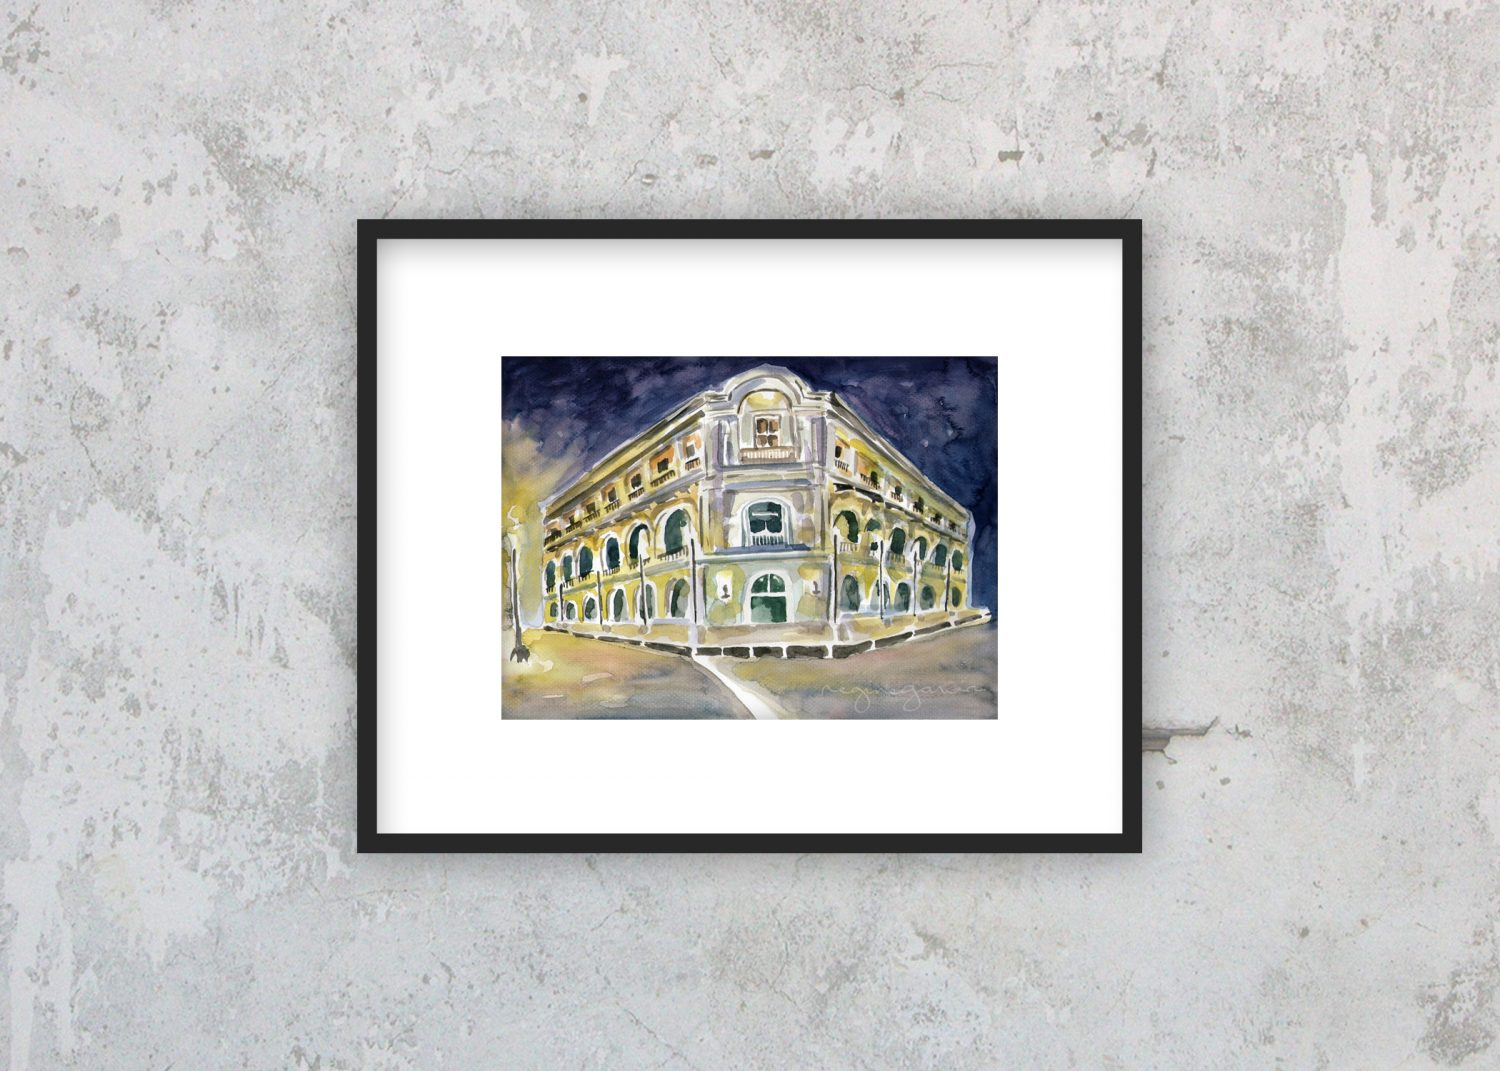 The International Hotel in Calle Real